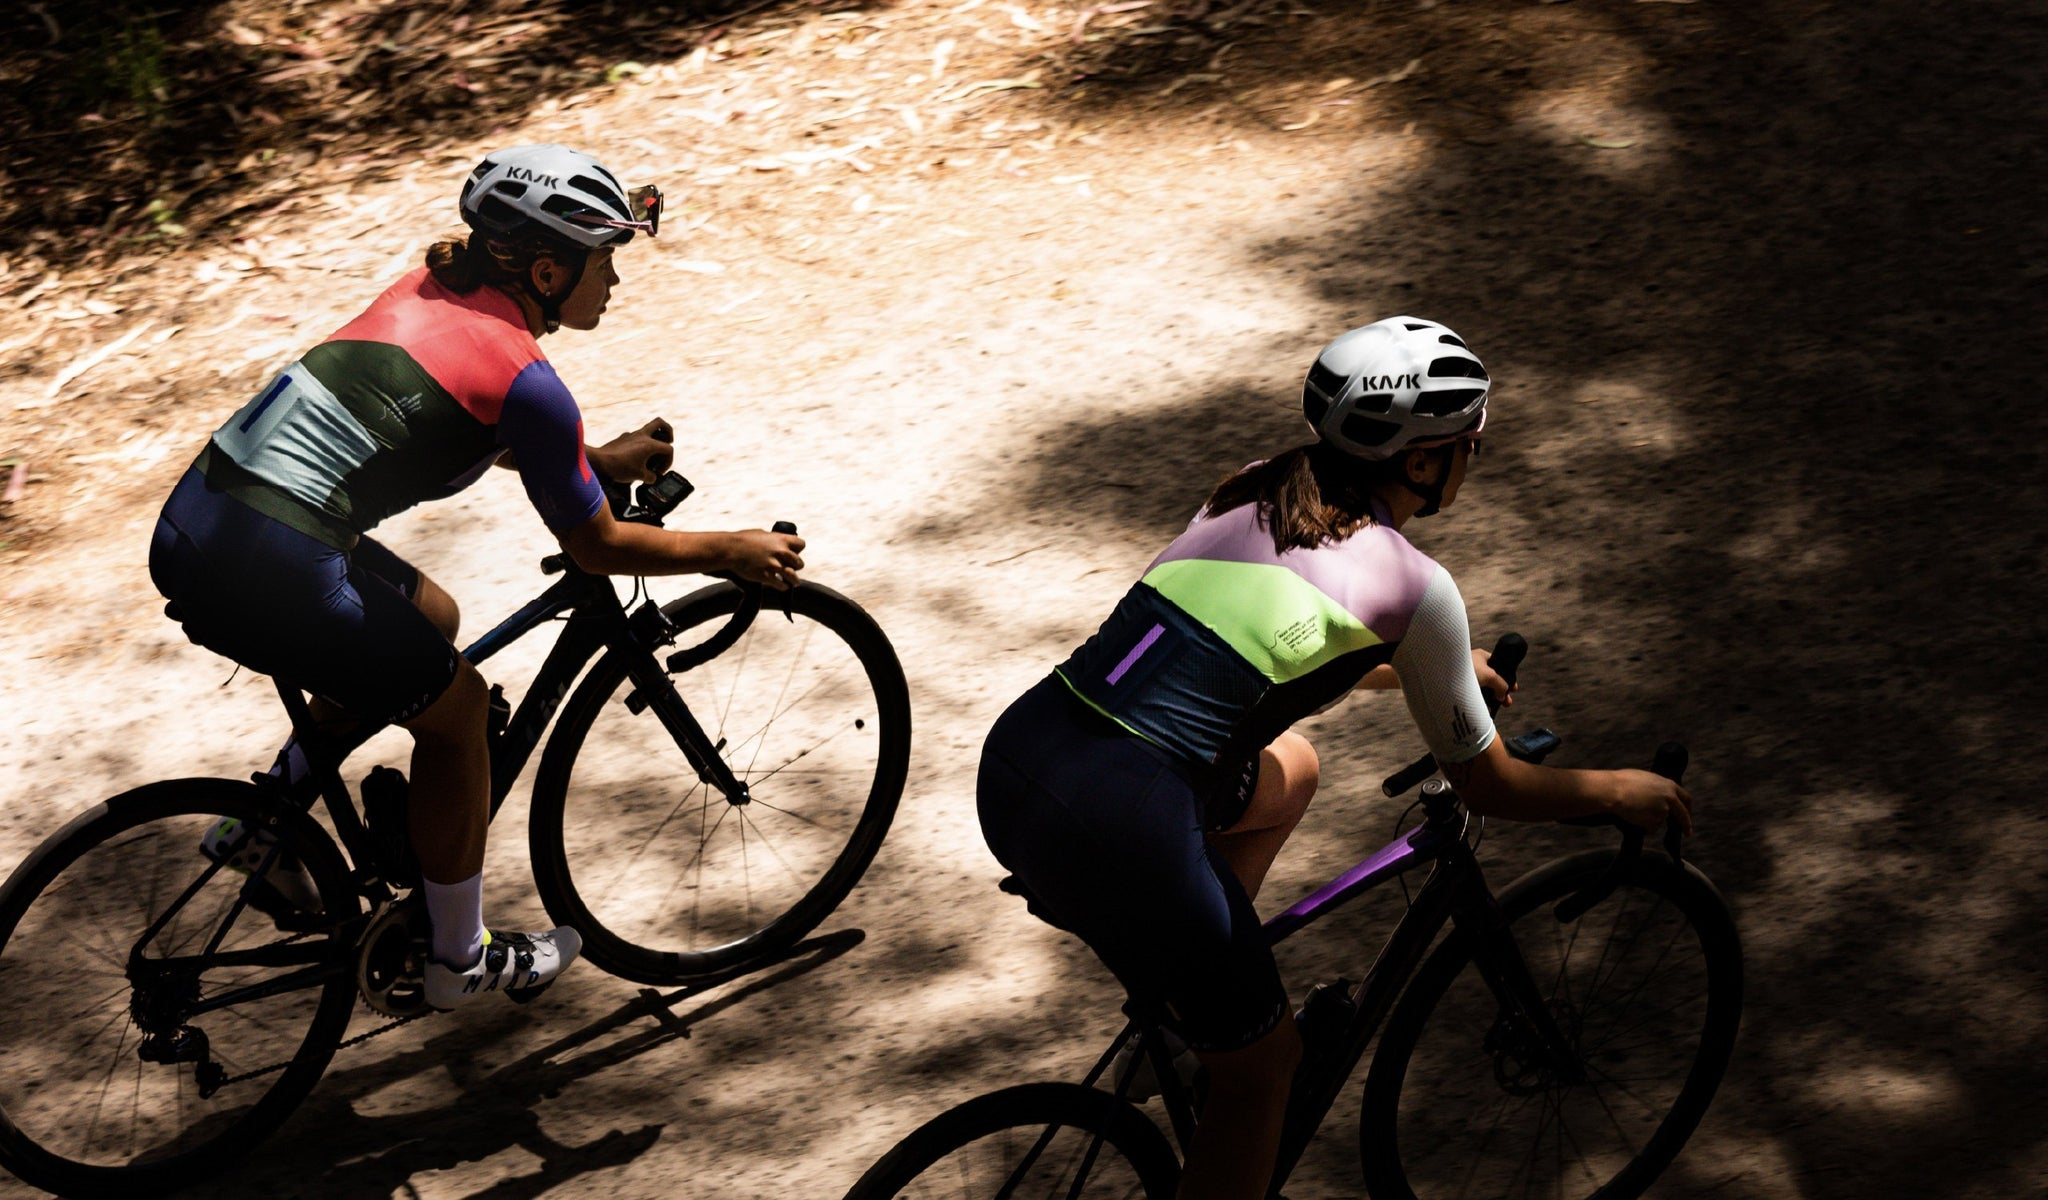 MAAP Women's Vector Pro Air Jersey 2.0 in Light Haze for riding in warm weather conditions.